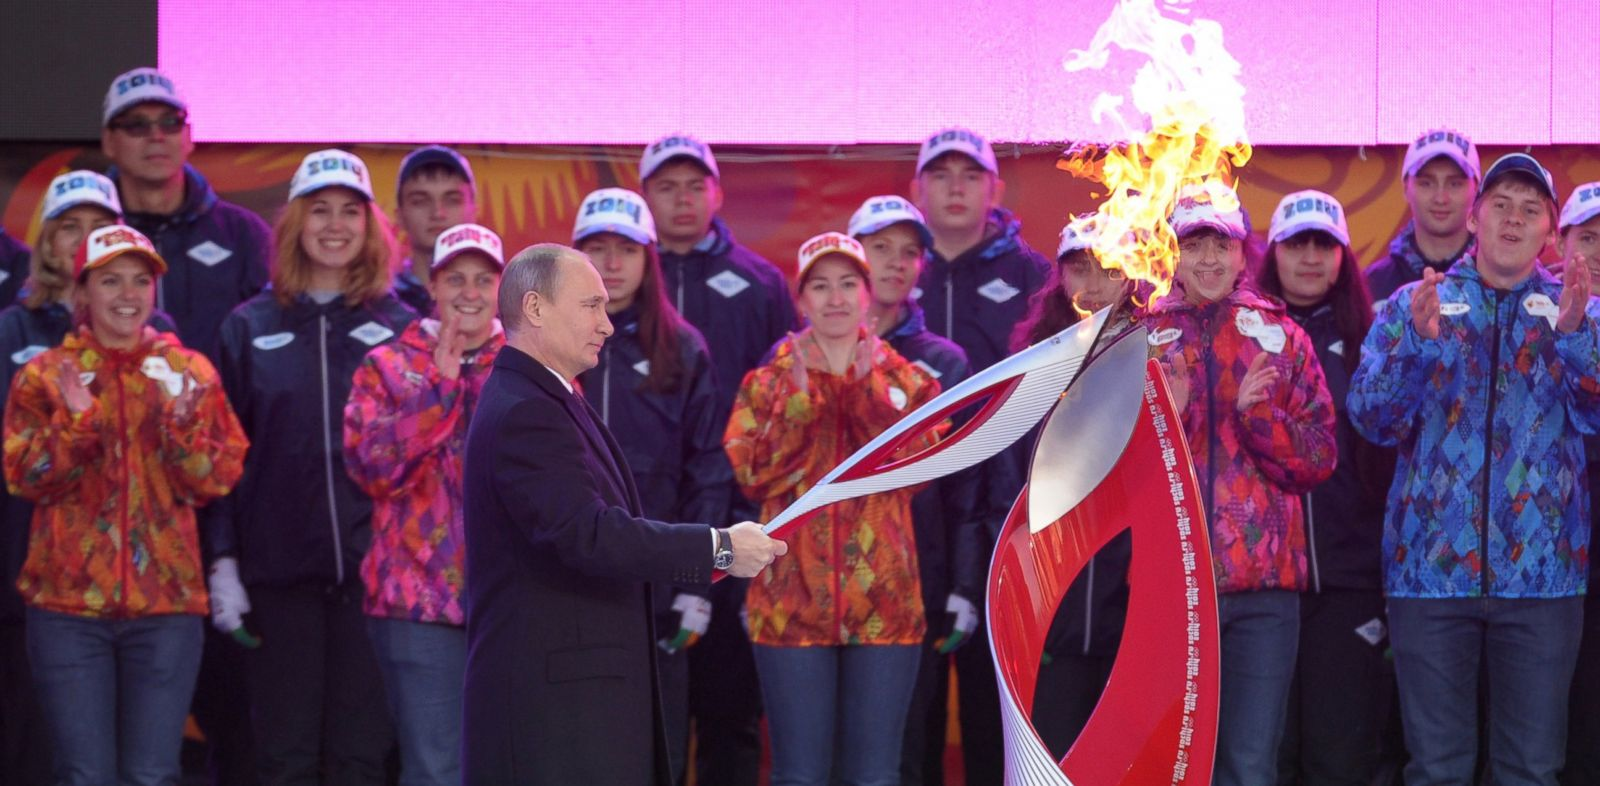 PHOTO: Russias President Vladimir Putin lights the Olympic torch to mark the start of the Sochi 2014 Winter Olympic torch relay across Russia, Oct. 6, 2013, in Moscow.